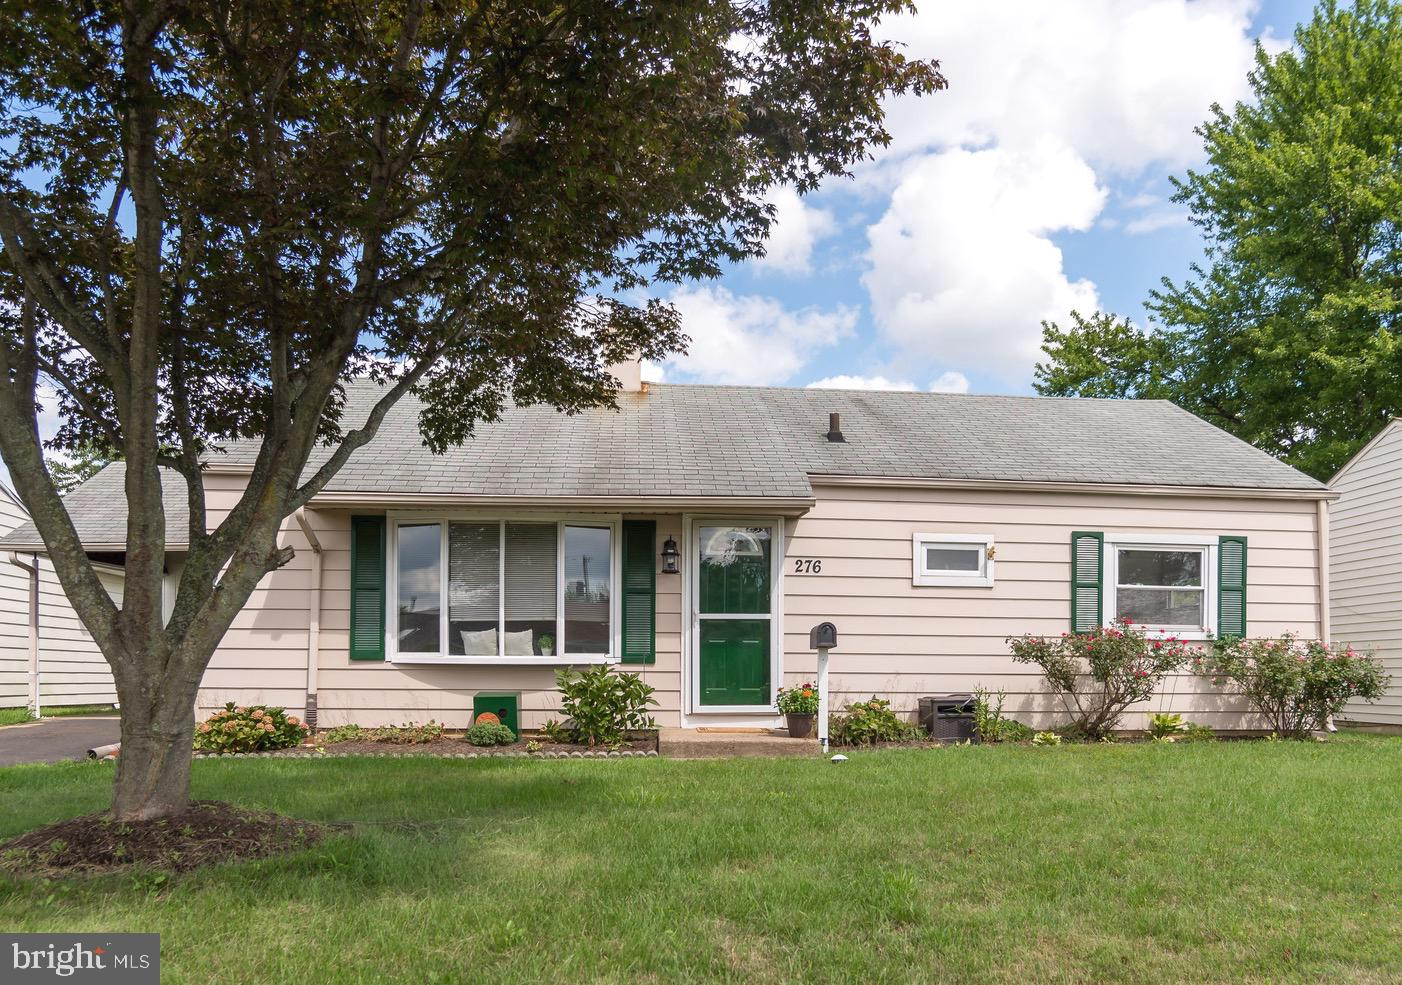 Single Family Homes for Sale at 276 N OLDS BLVD Fairless Hills, Pennsylvania 19030 United States